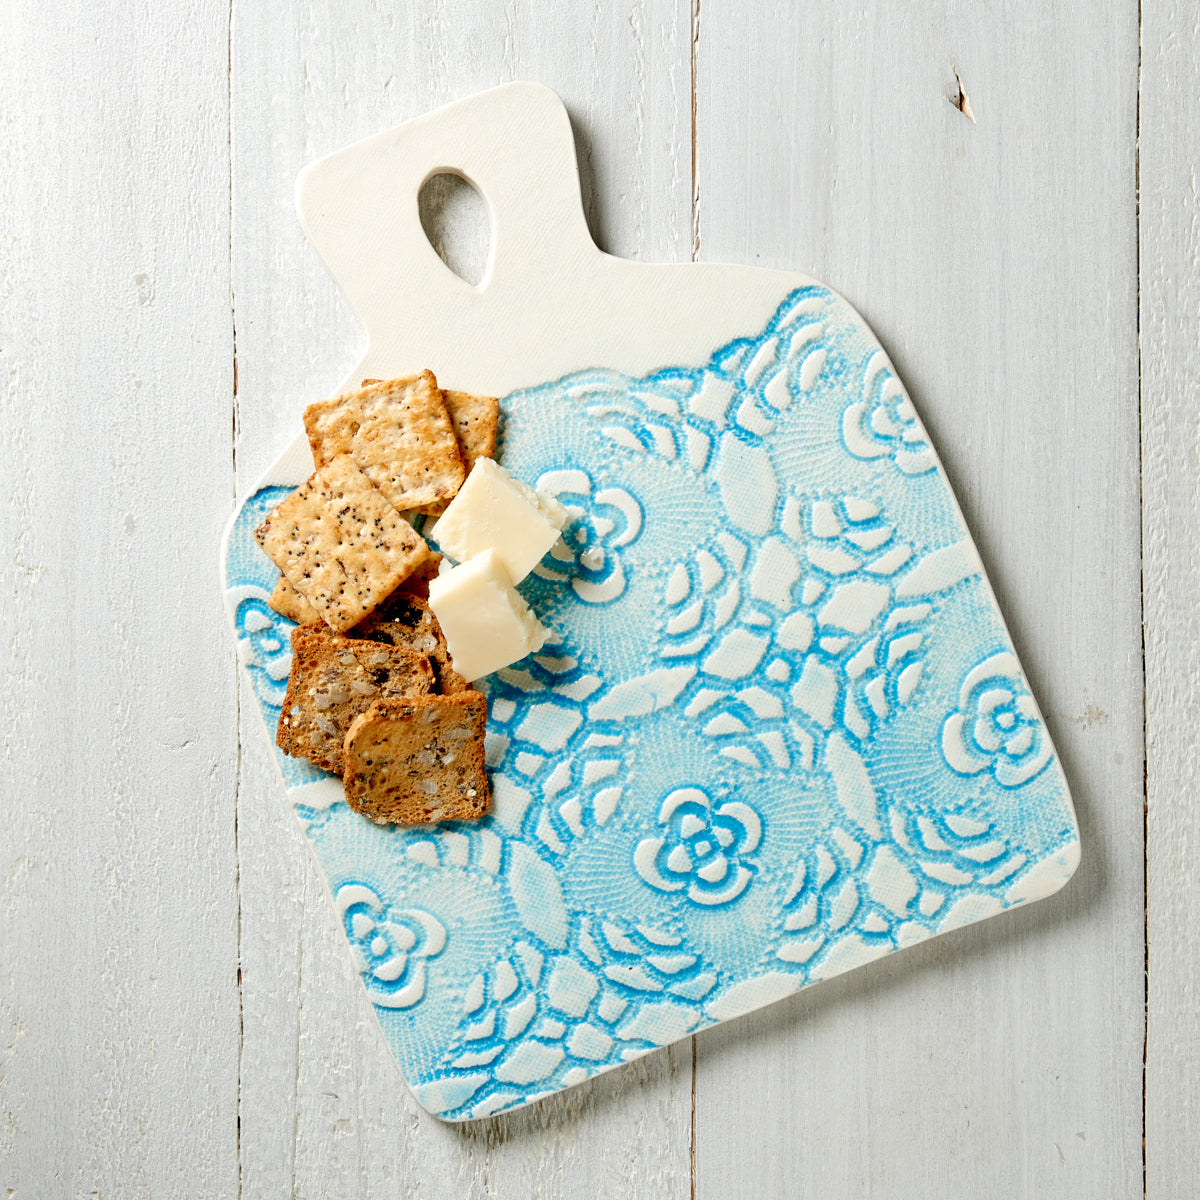 Lace Imprinted Pottery Board